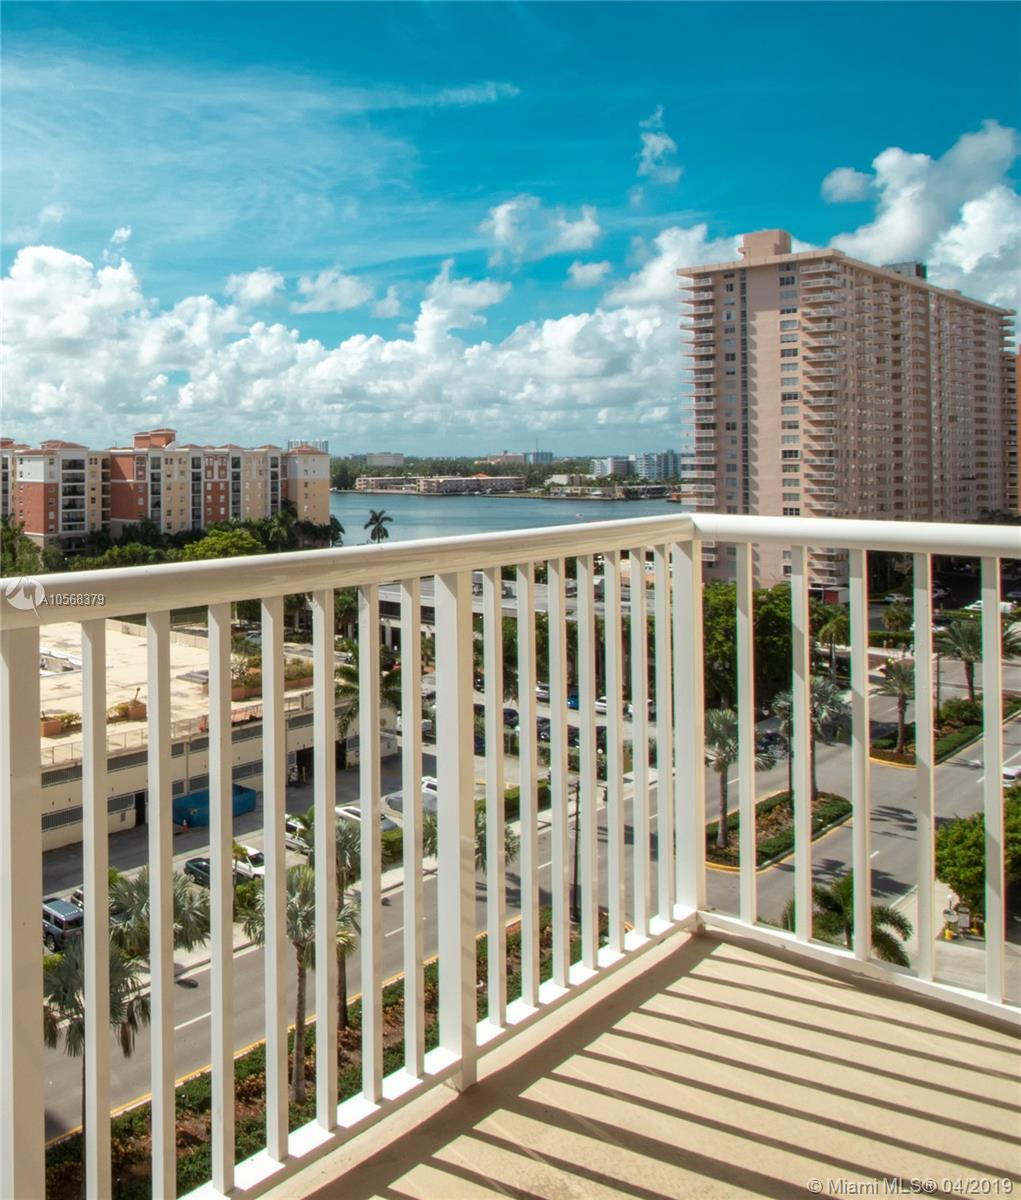 Enjoy Of This Hidden Pocket In Sunny Isles, Where The Beach Is Only A Short Walk From The 24 Hour Concierge Service. Unit Is Very Bright From All The Natural Light, And Has A Split Floor Plan That Hosts A Nice Open Kitchen, Separate Bar, Dining Area And Living Room. Balcony Overlooks Part Of The Bay And Ocean. Tile Throughout The Entire Unit, Except The Master Bedroom. Closet Space Is Plentiful, And Best Of All The Maintenance Cost Is By Far One Of The Lowest In Miami, Considering It Includes Cable, Internet, Appliace Repair And All Amenities: Gym, Pool, Conference Rooms, Game Room With Billiards, Impressive Common Areas And Much More. Desirable, Beautifully Maintained Building With Pool, Saunas, Gym Etc. Convenient To Shops, Restaurants And The Best Beaches. Make This Your Dream Home!